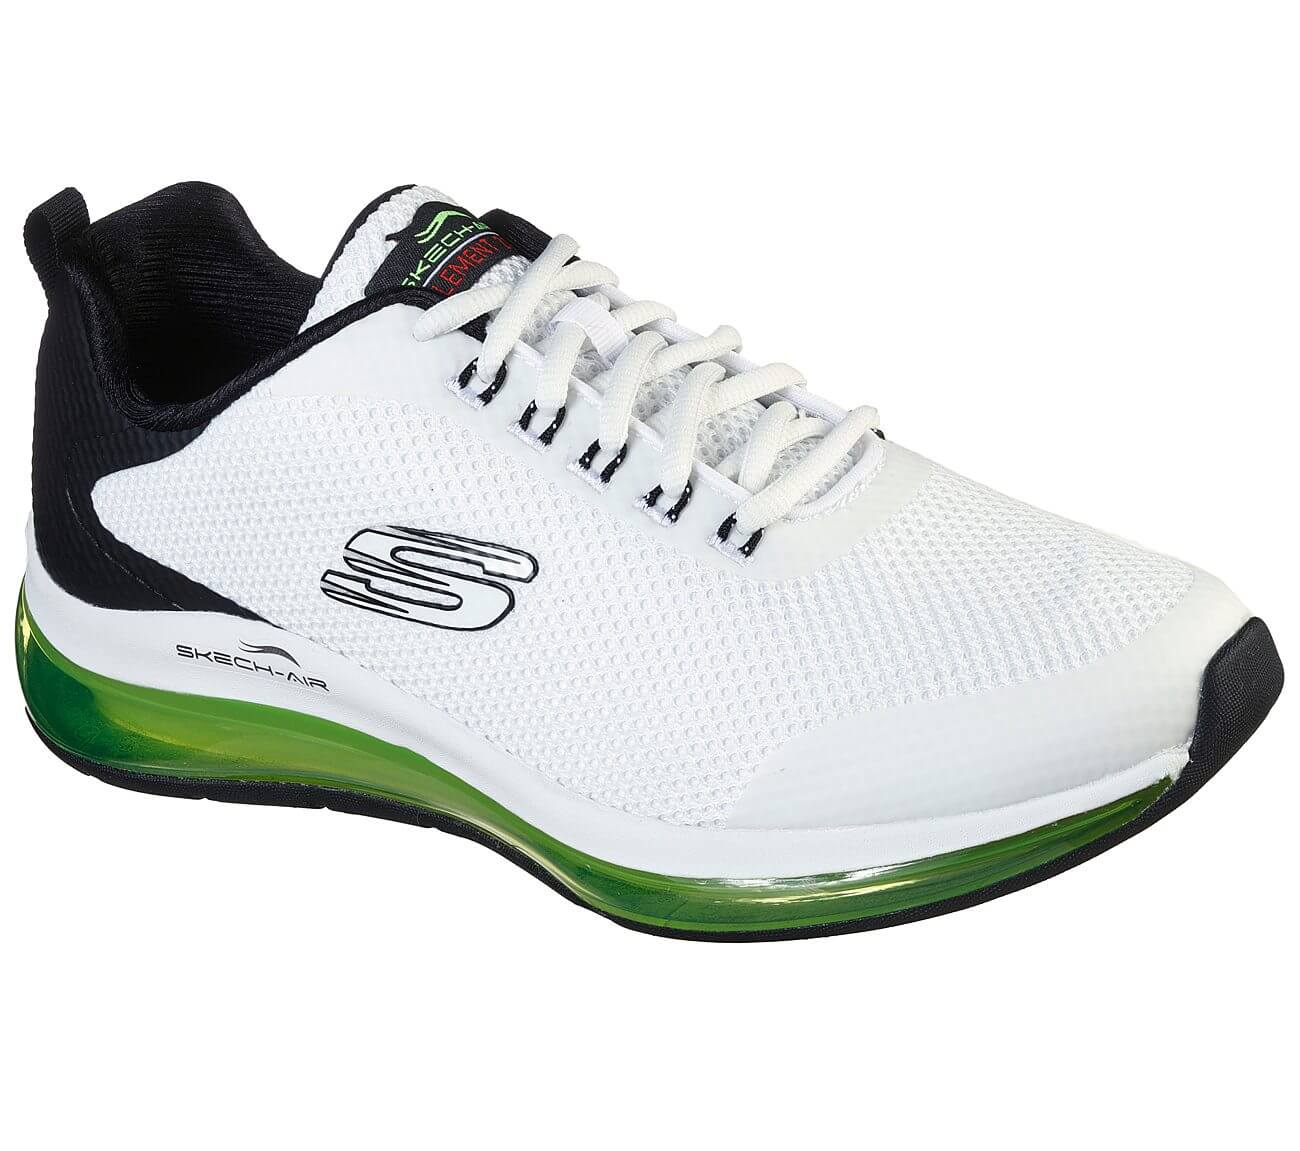 Skechers Shoes for Men| Summer 2020 | Florence Shoe Shopping